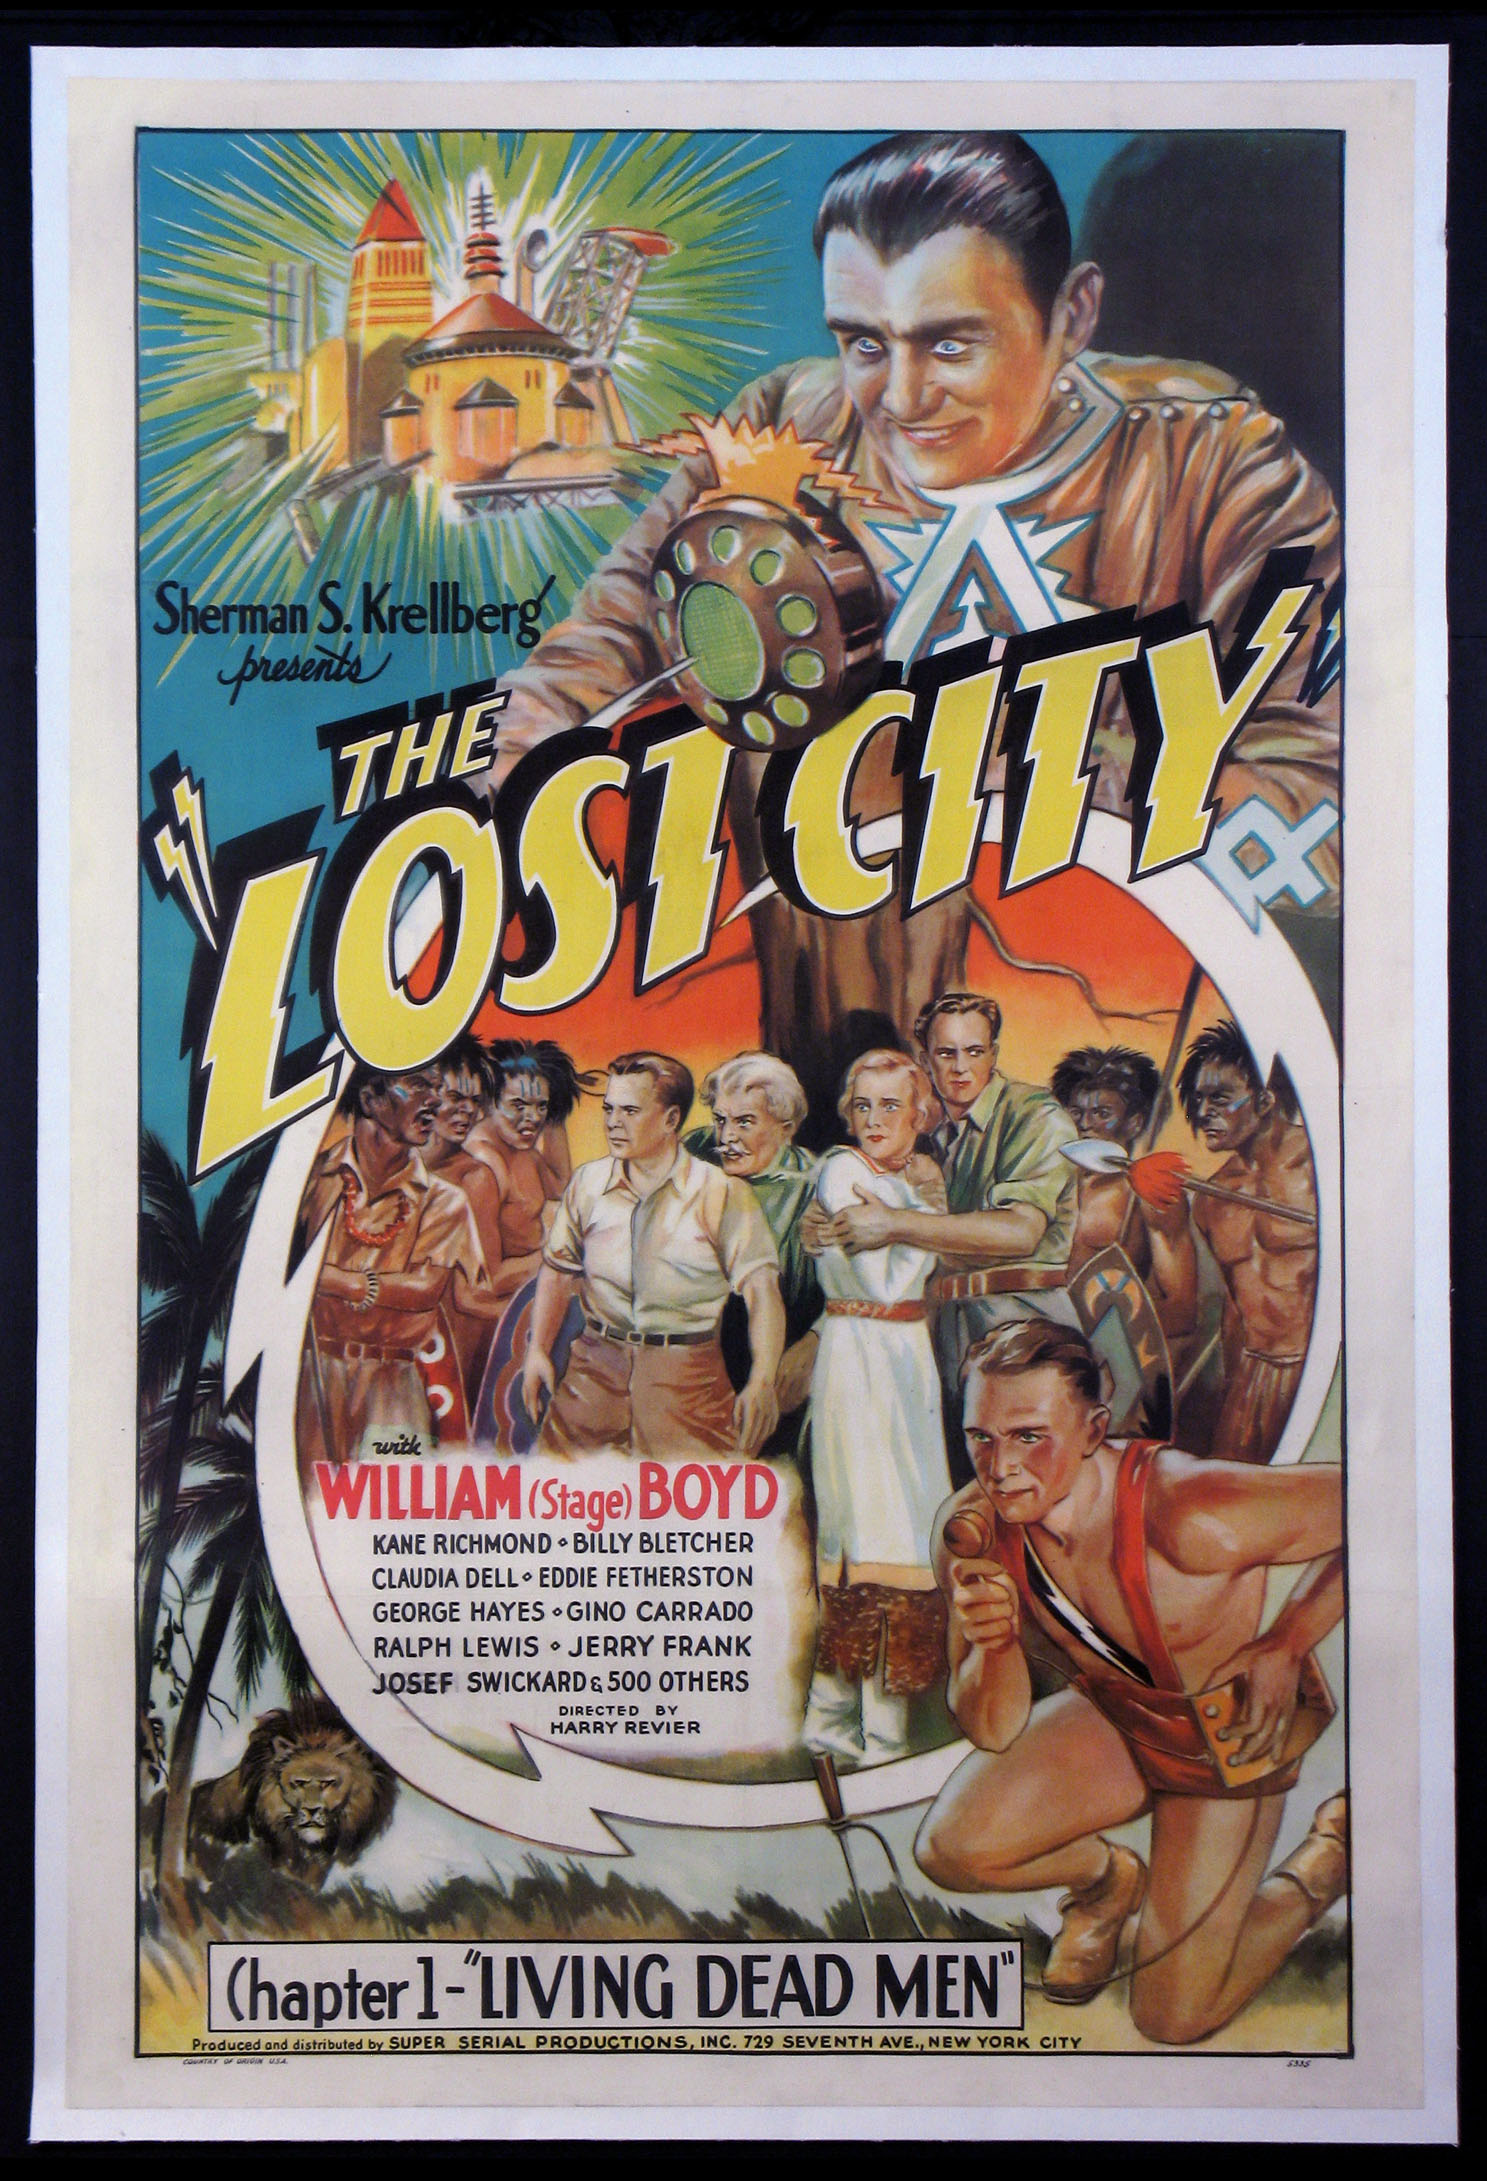 LOST CITY of the Legurian @ FilmPosters.com